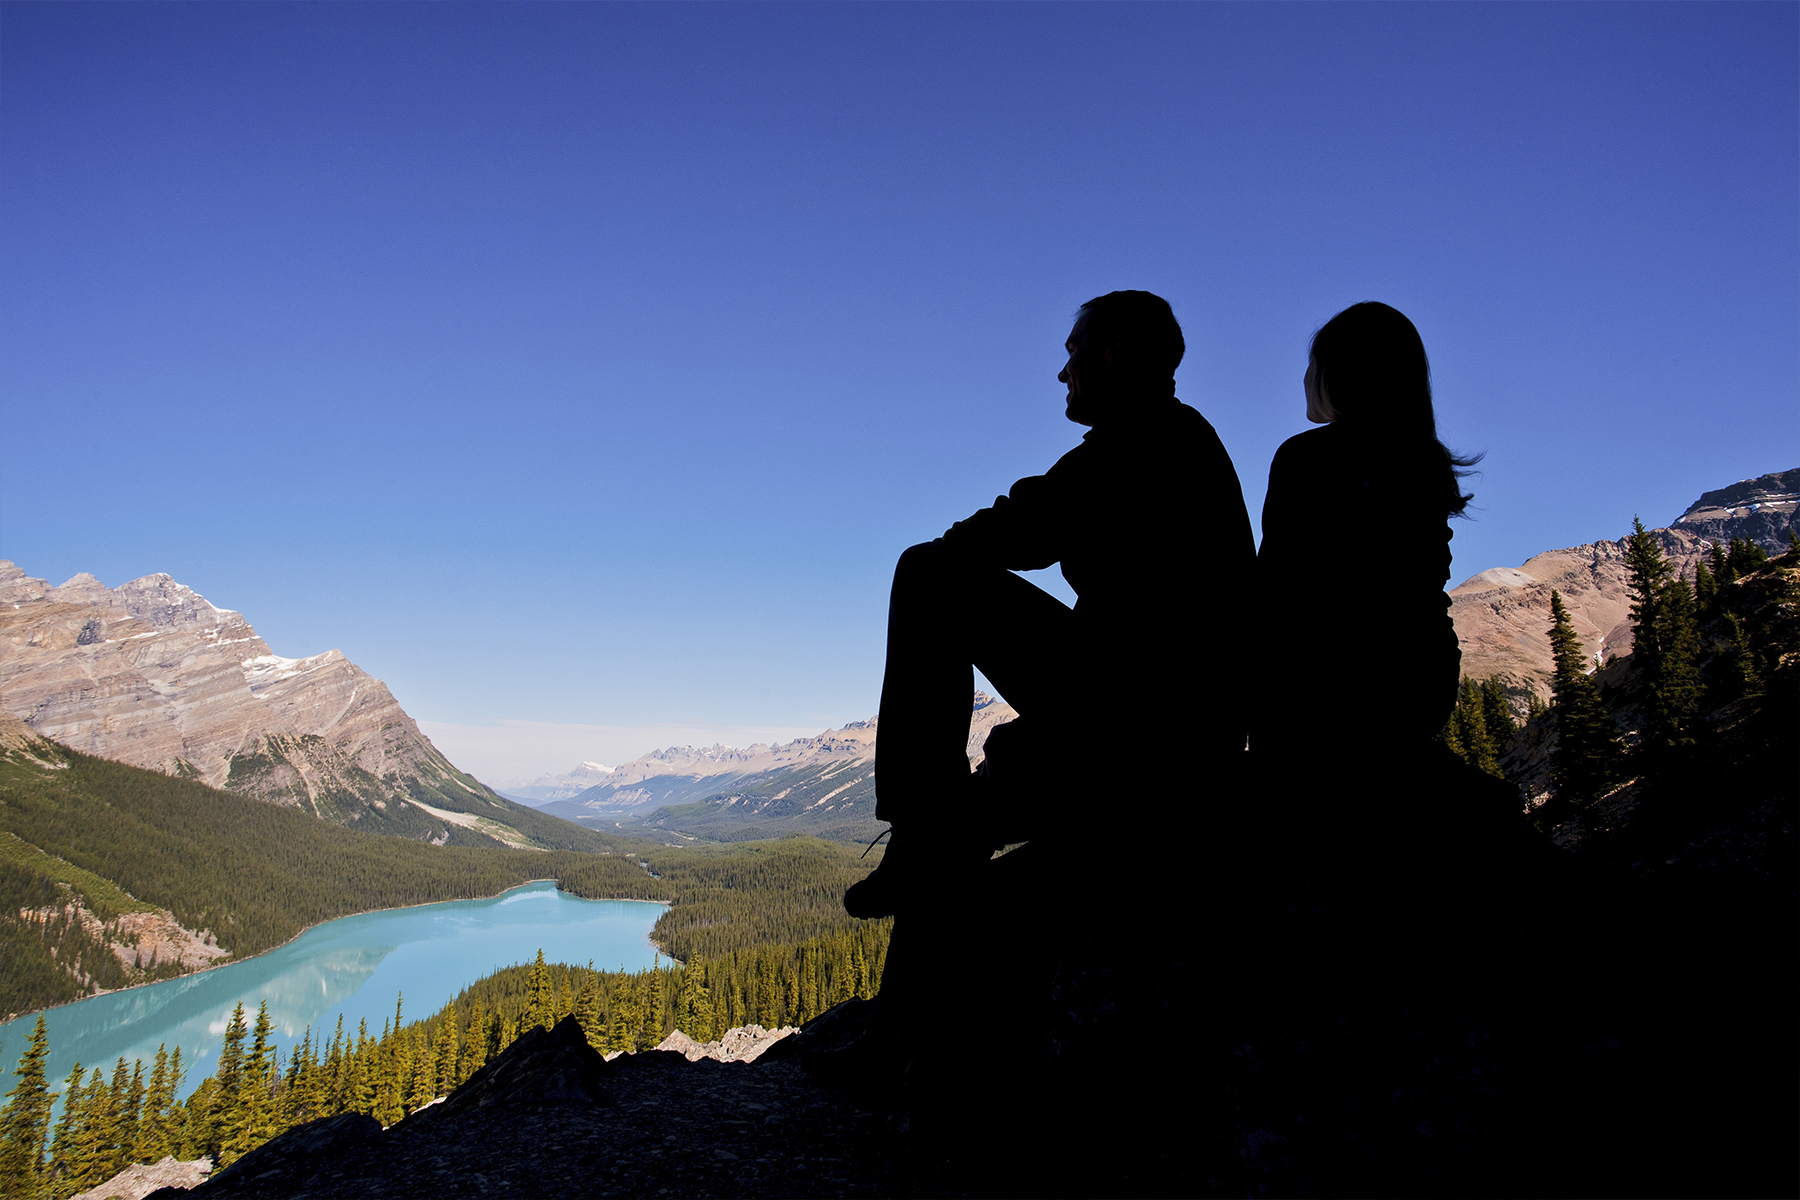 Peyto-lake-icefields-parkway-alberta-canada-que-hacer